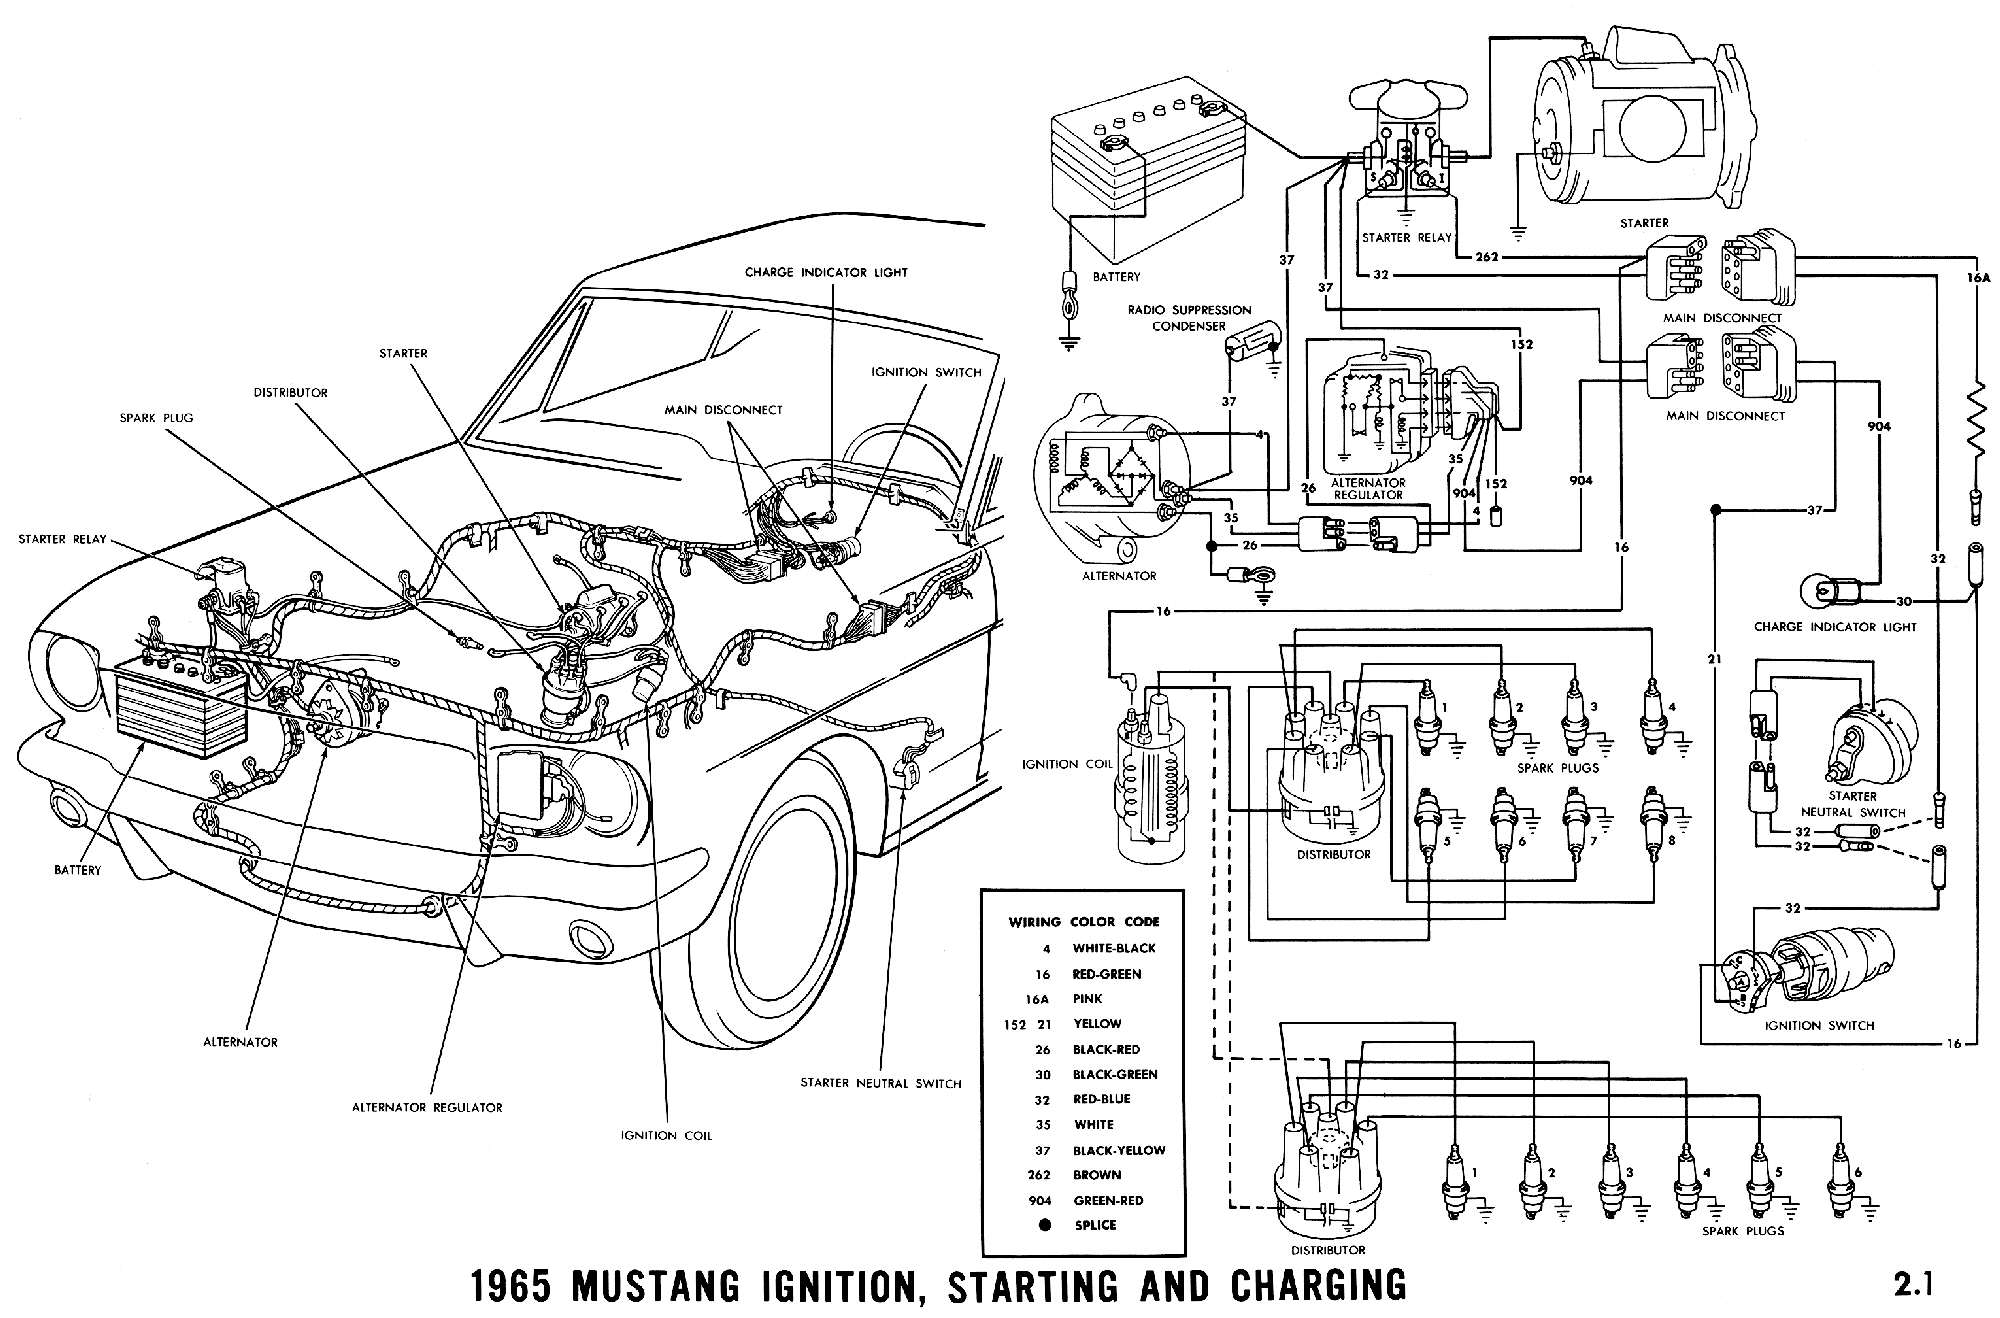 1965c 1965 mustang wiring diagrams average joe restoration 1965 mustang engine wiring harness at virtualis.co